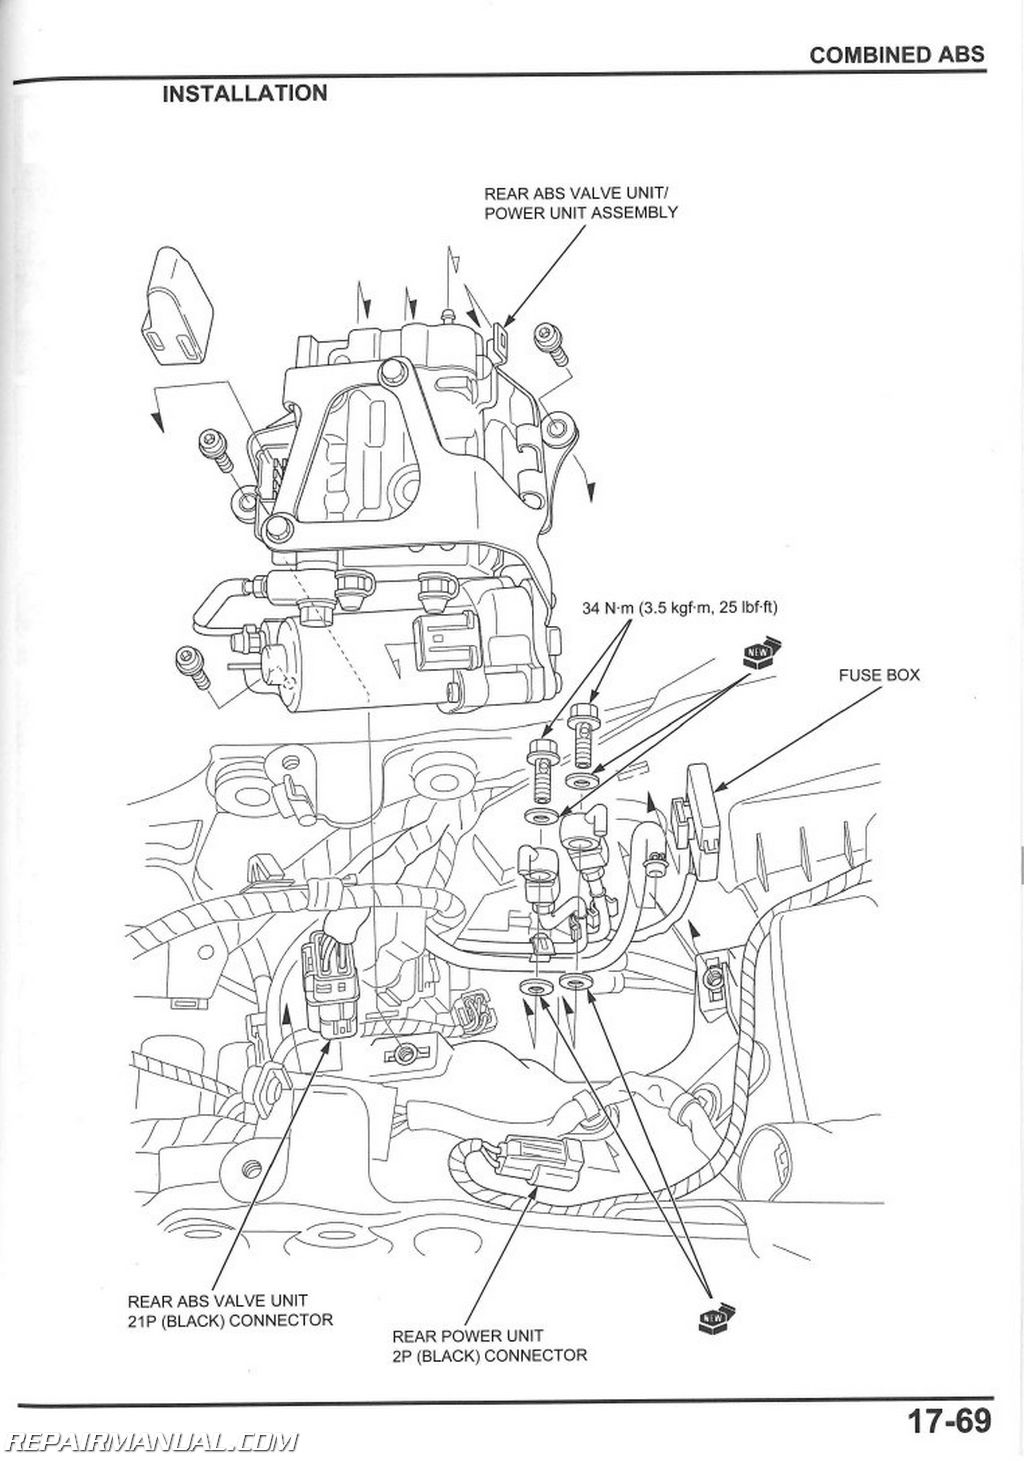 Honda Cbr600rr Wiring Diagram Wiring Diagram